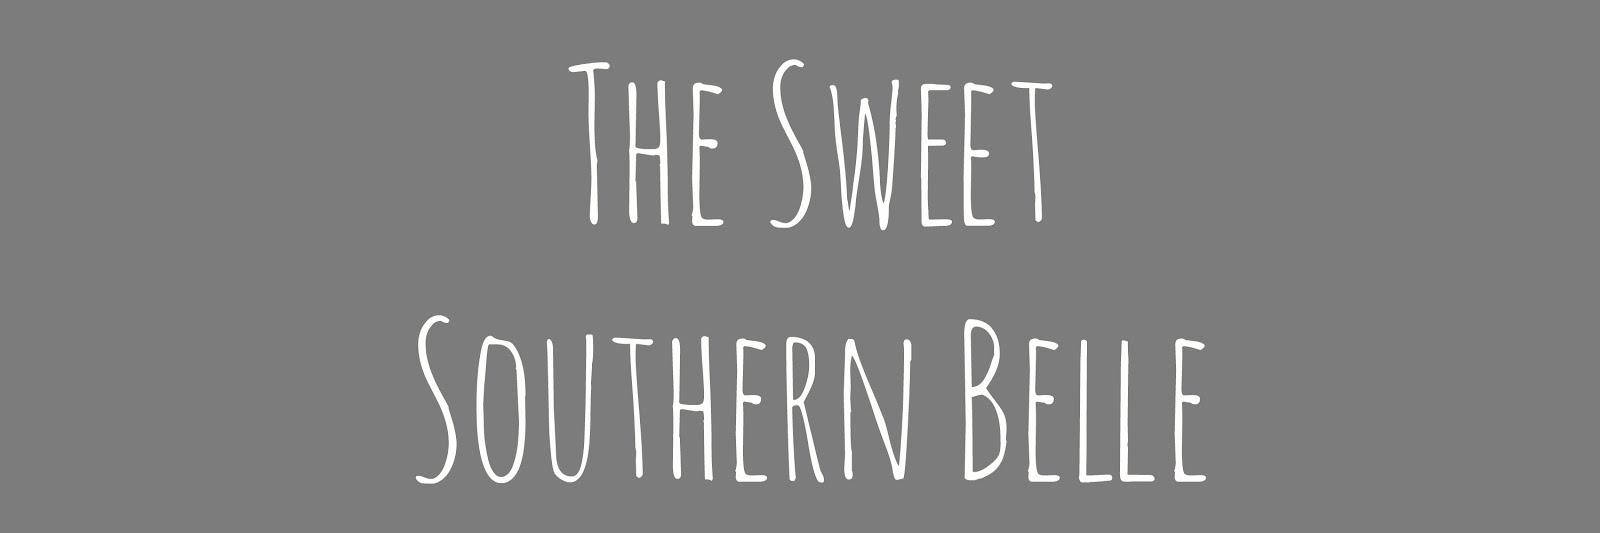 The Sweet Southern Belle